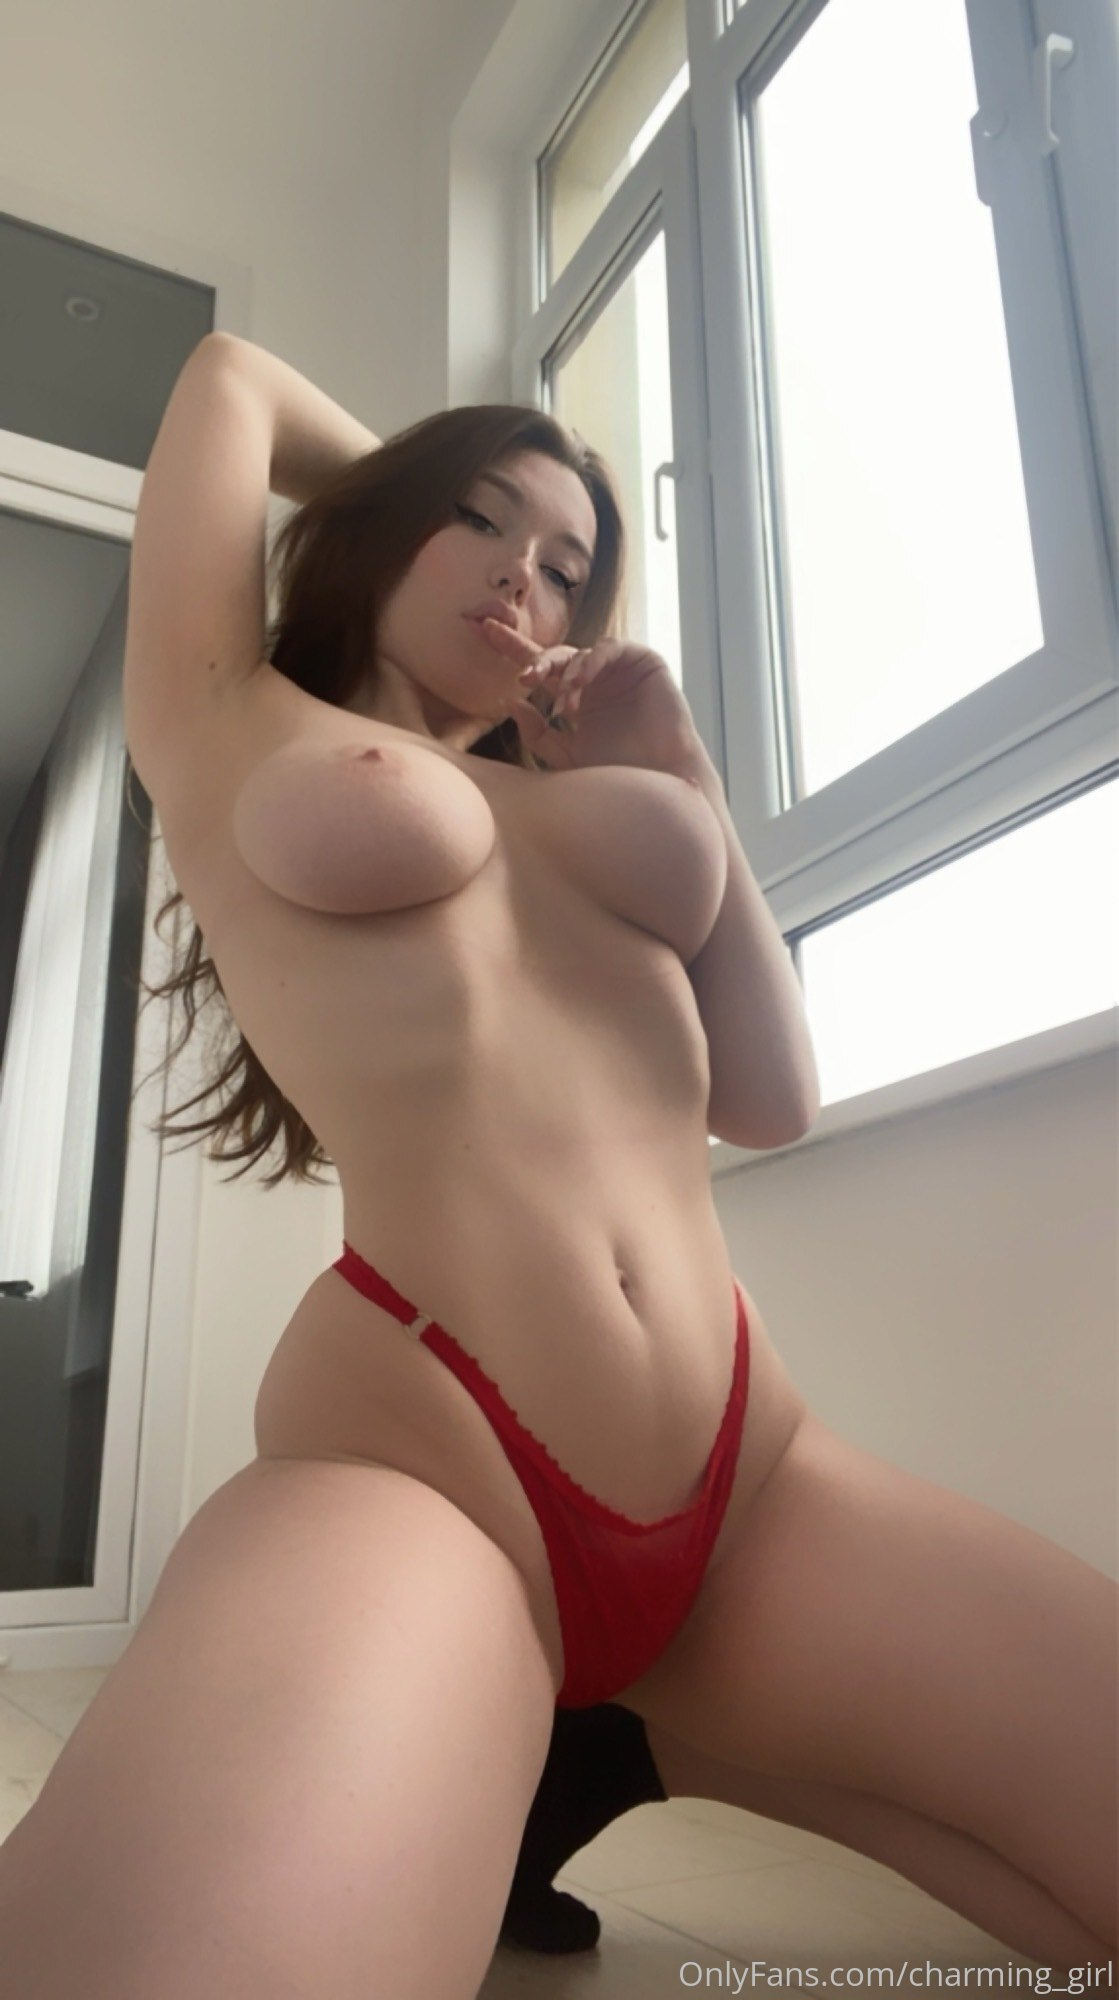 Charming girl Porn OnlyFans Leaked Nudes 80